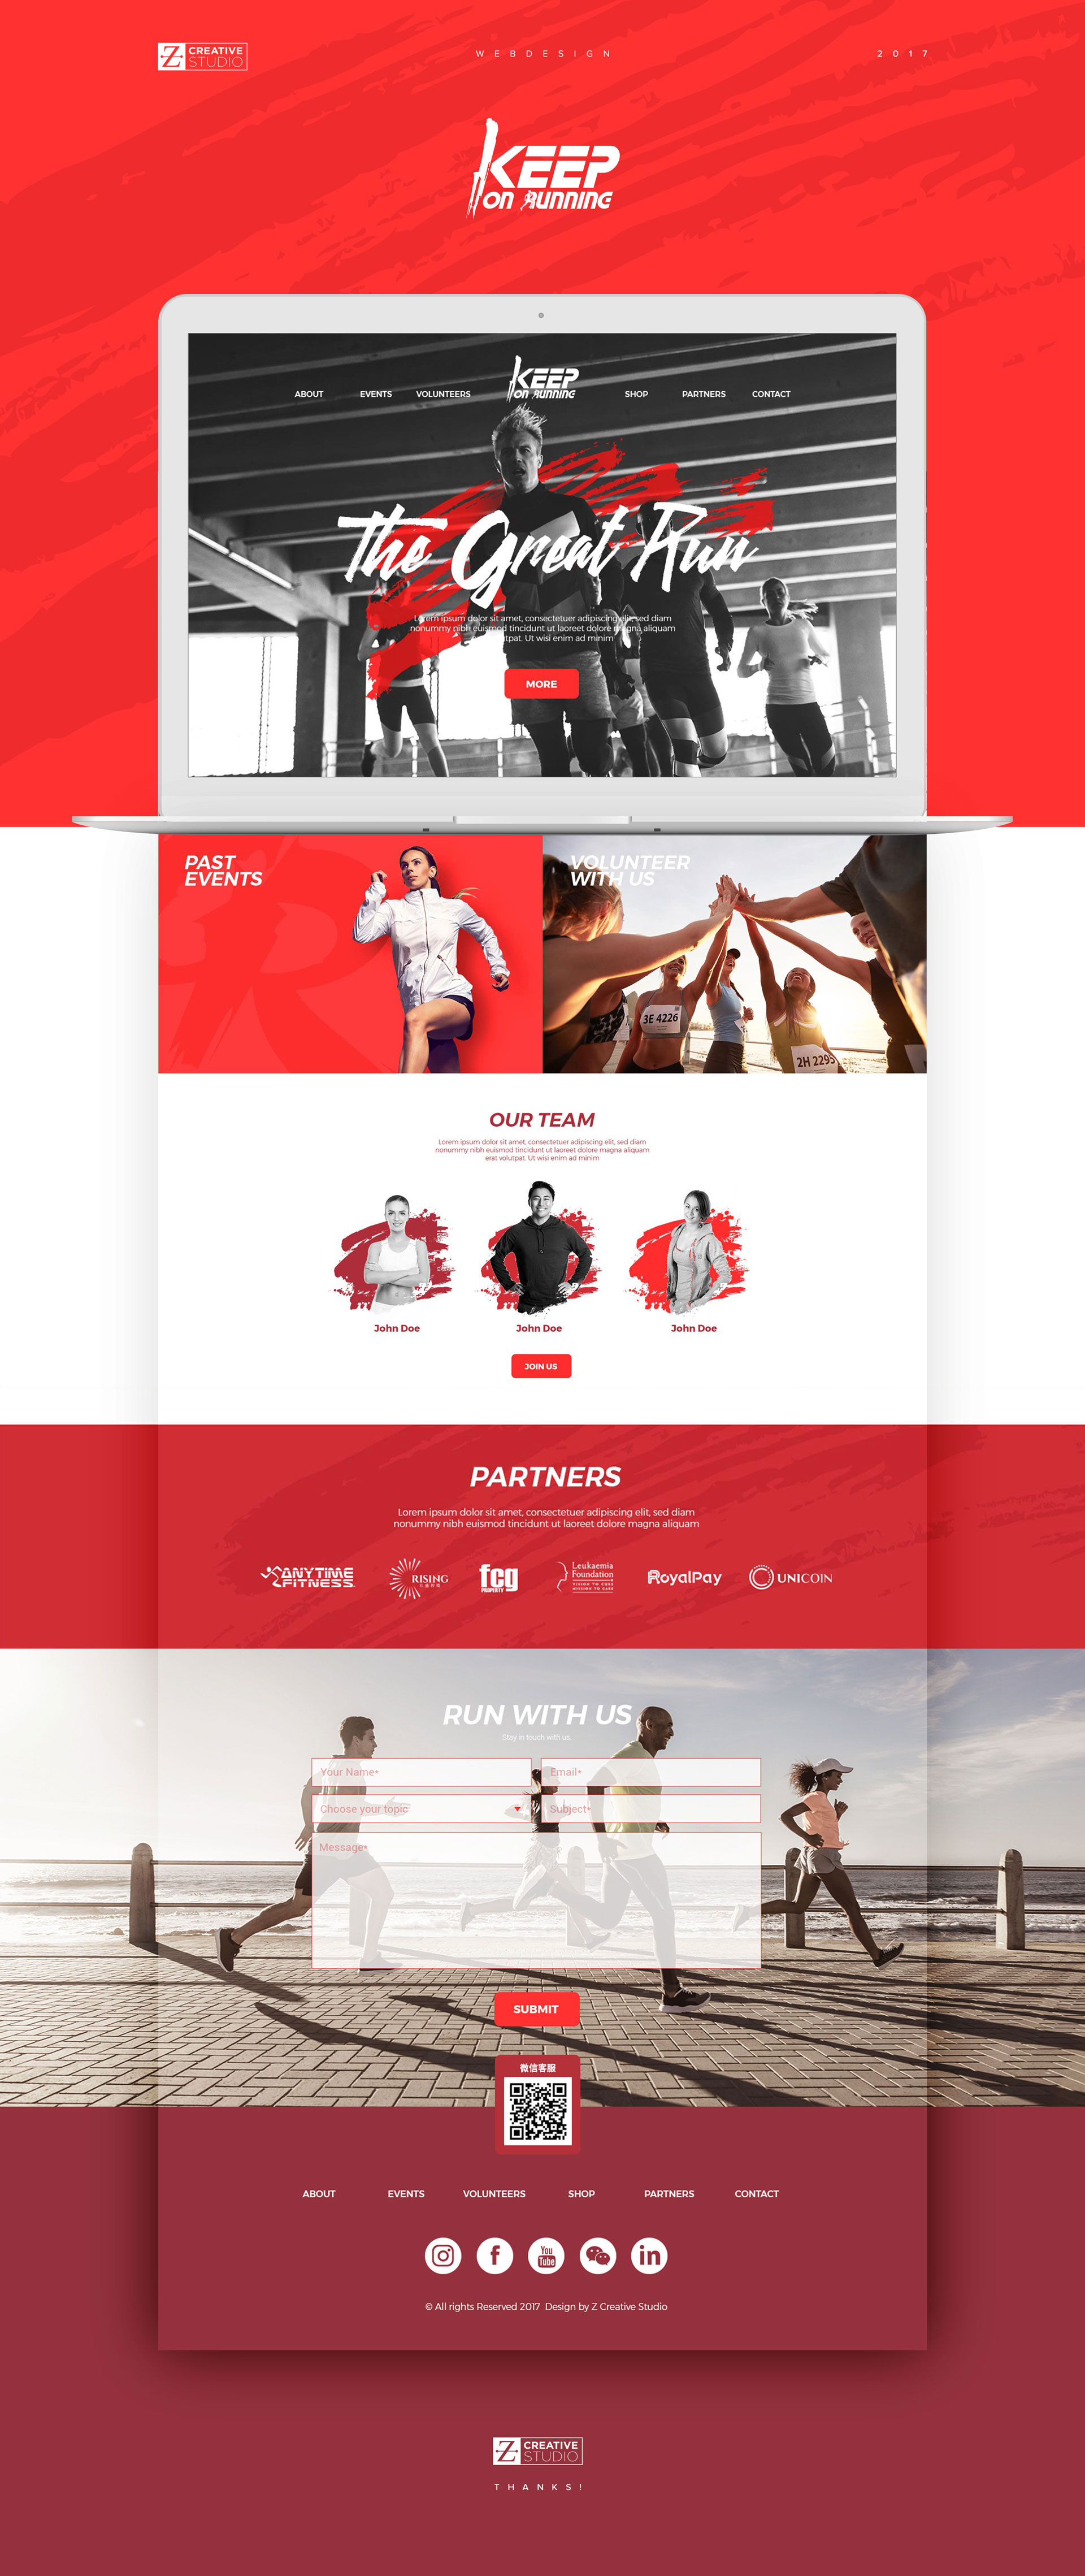 Keep on Running Club web design by Z Creative Studio Branding & Graphic Design Melbourne